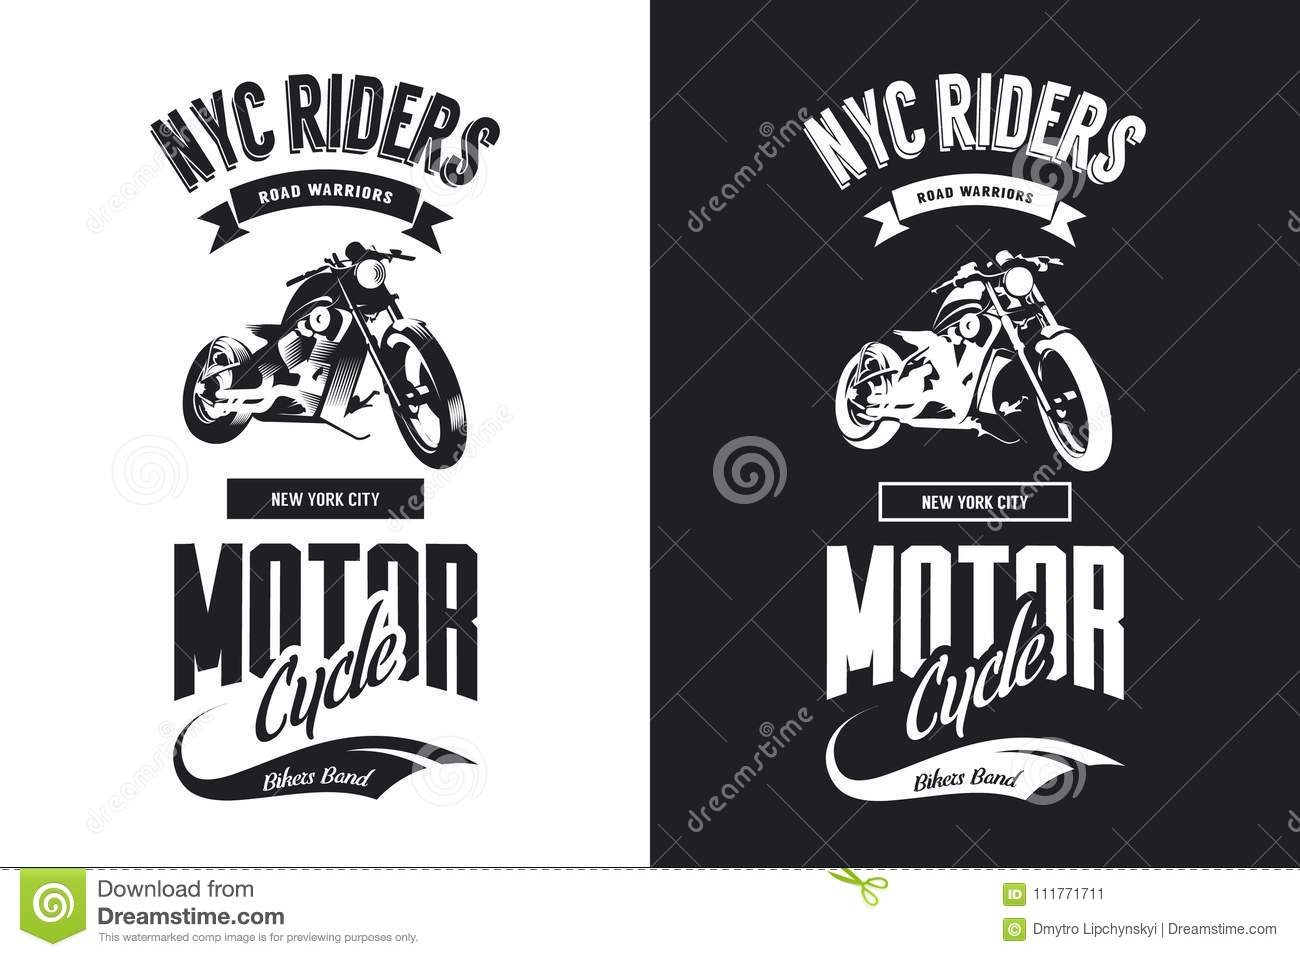 e1c98433 Premium quality motorcycle logotype tee-shirt emblem illustration. New York  City road warriors street wear retro hipster tee print design.